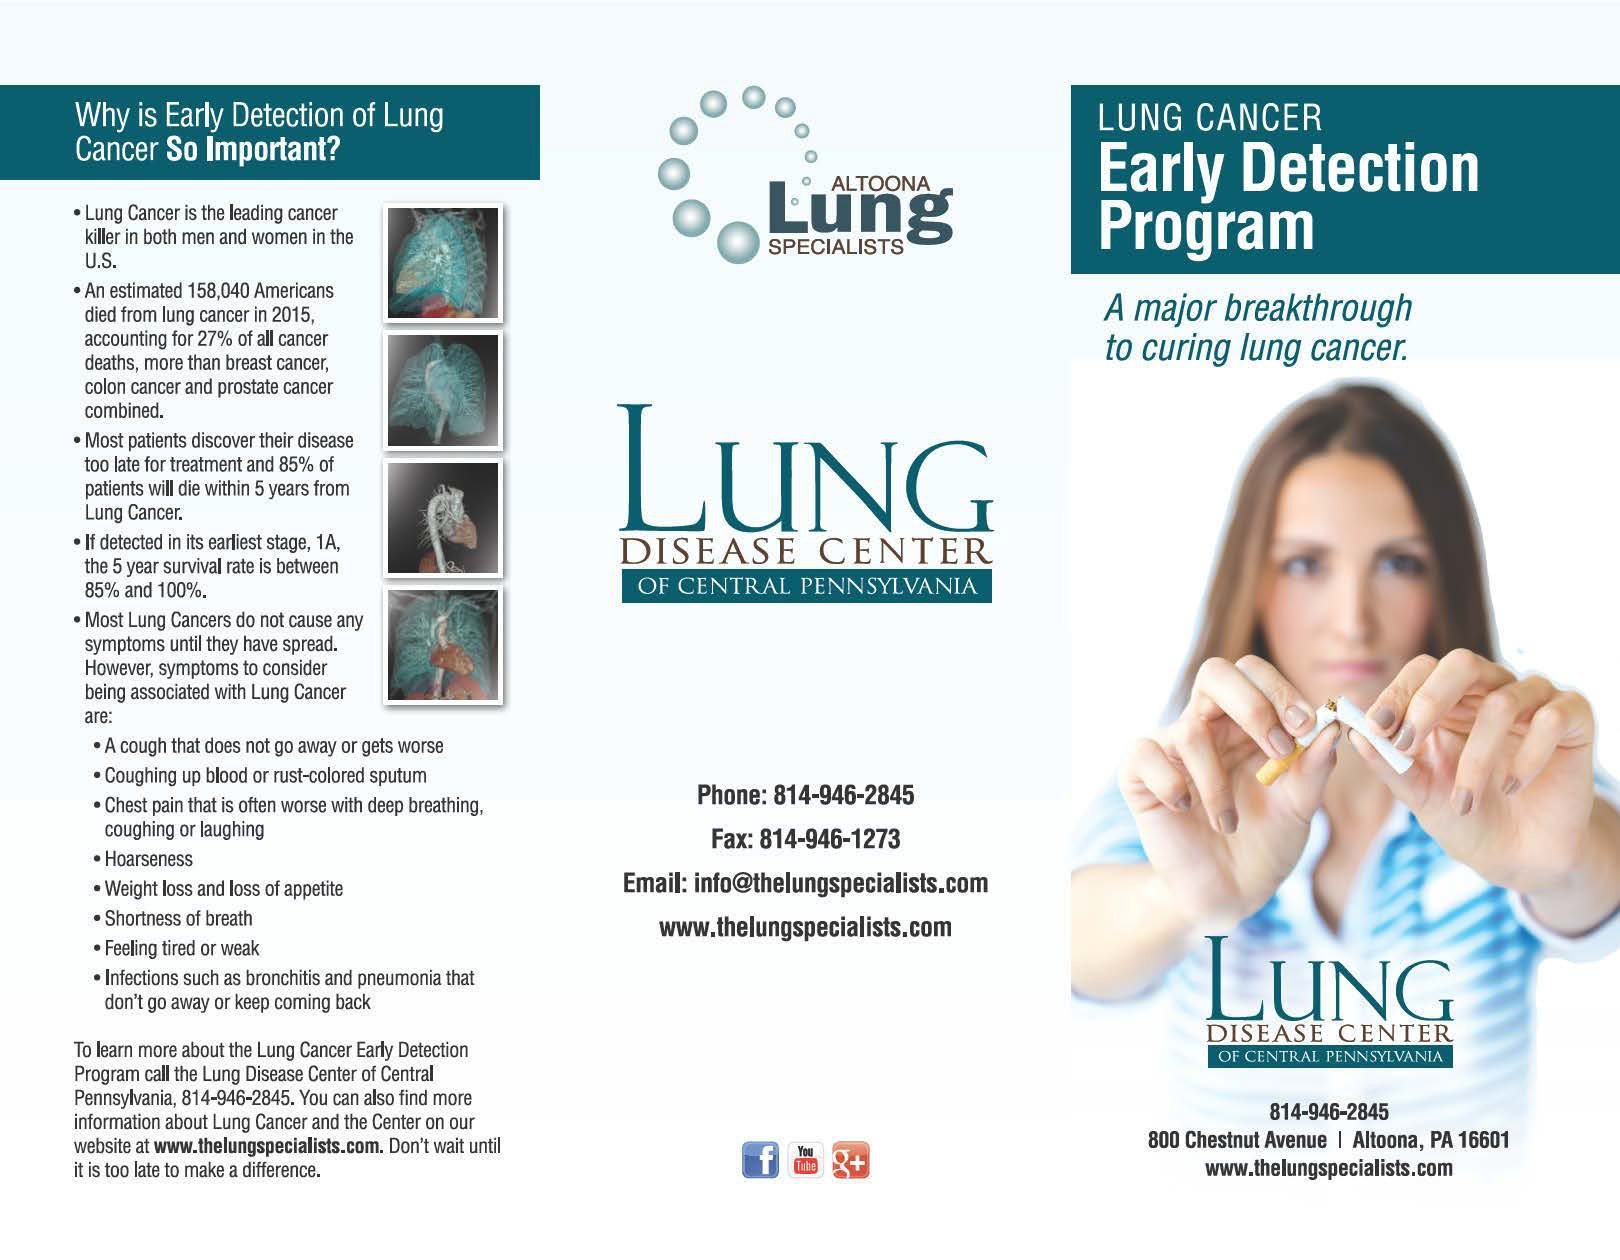 LUNG CANCER EARLY DETECTION PROGRAM